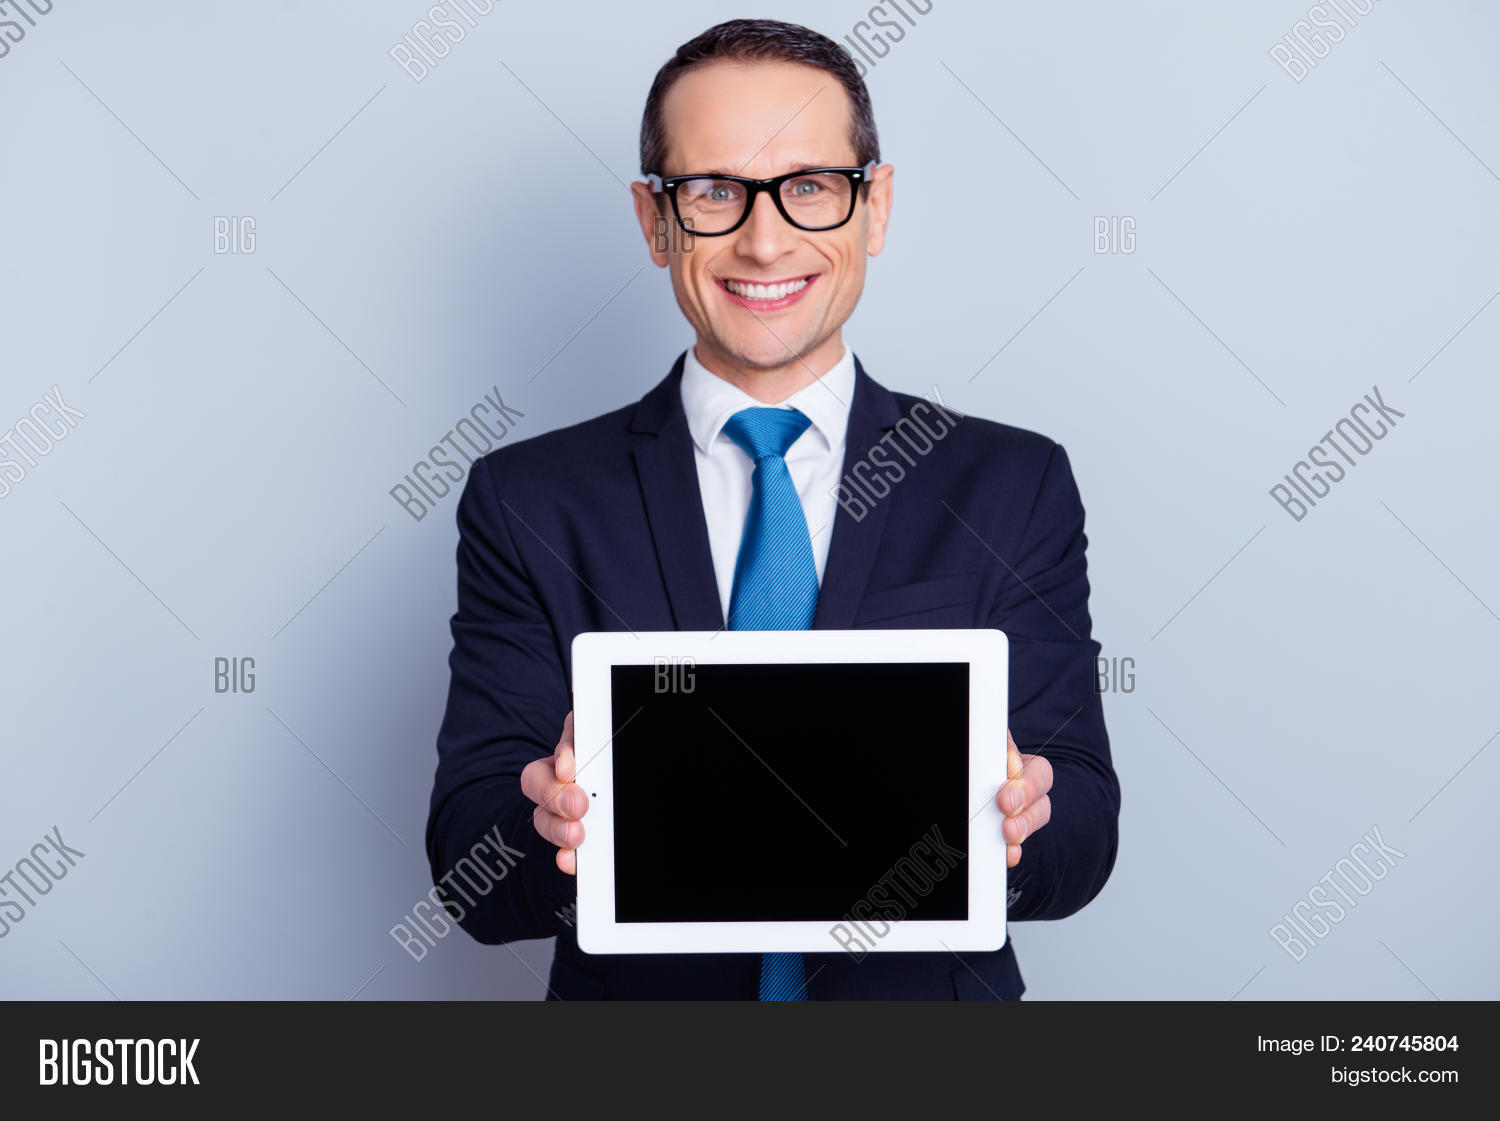 adult,advertising,aging,black,blank,business,businessman,computer,copy,corporate,education,email,empty,entrepreneur,eyewear,formal-wear,glasses,happy,innovation,internet,jacket,job,laptop,male,man,manager,mature,modern,monitor,presentation,product,professional,promotion,representative,screen,show,smiling,software,space,spectacles,successful,suit,tablet,teacher,technology,touchscreen,trend,tuxedo,work,worker